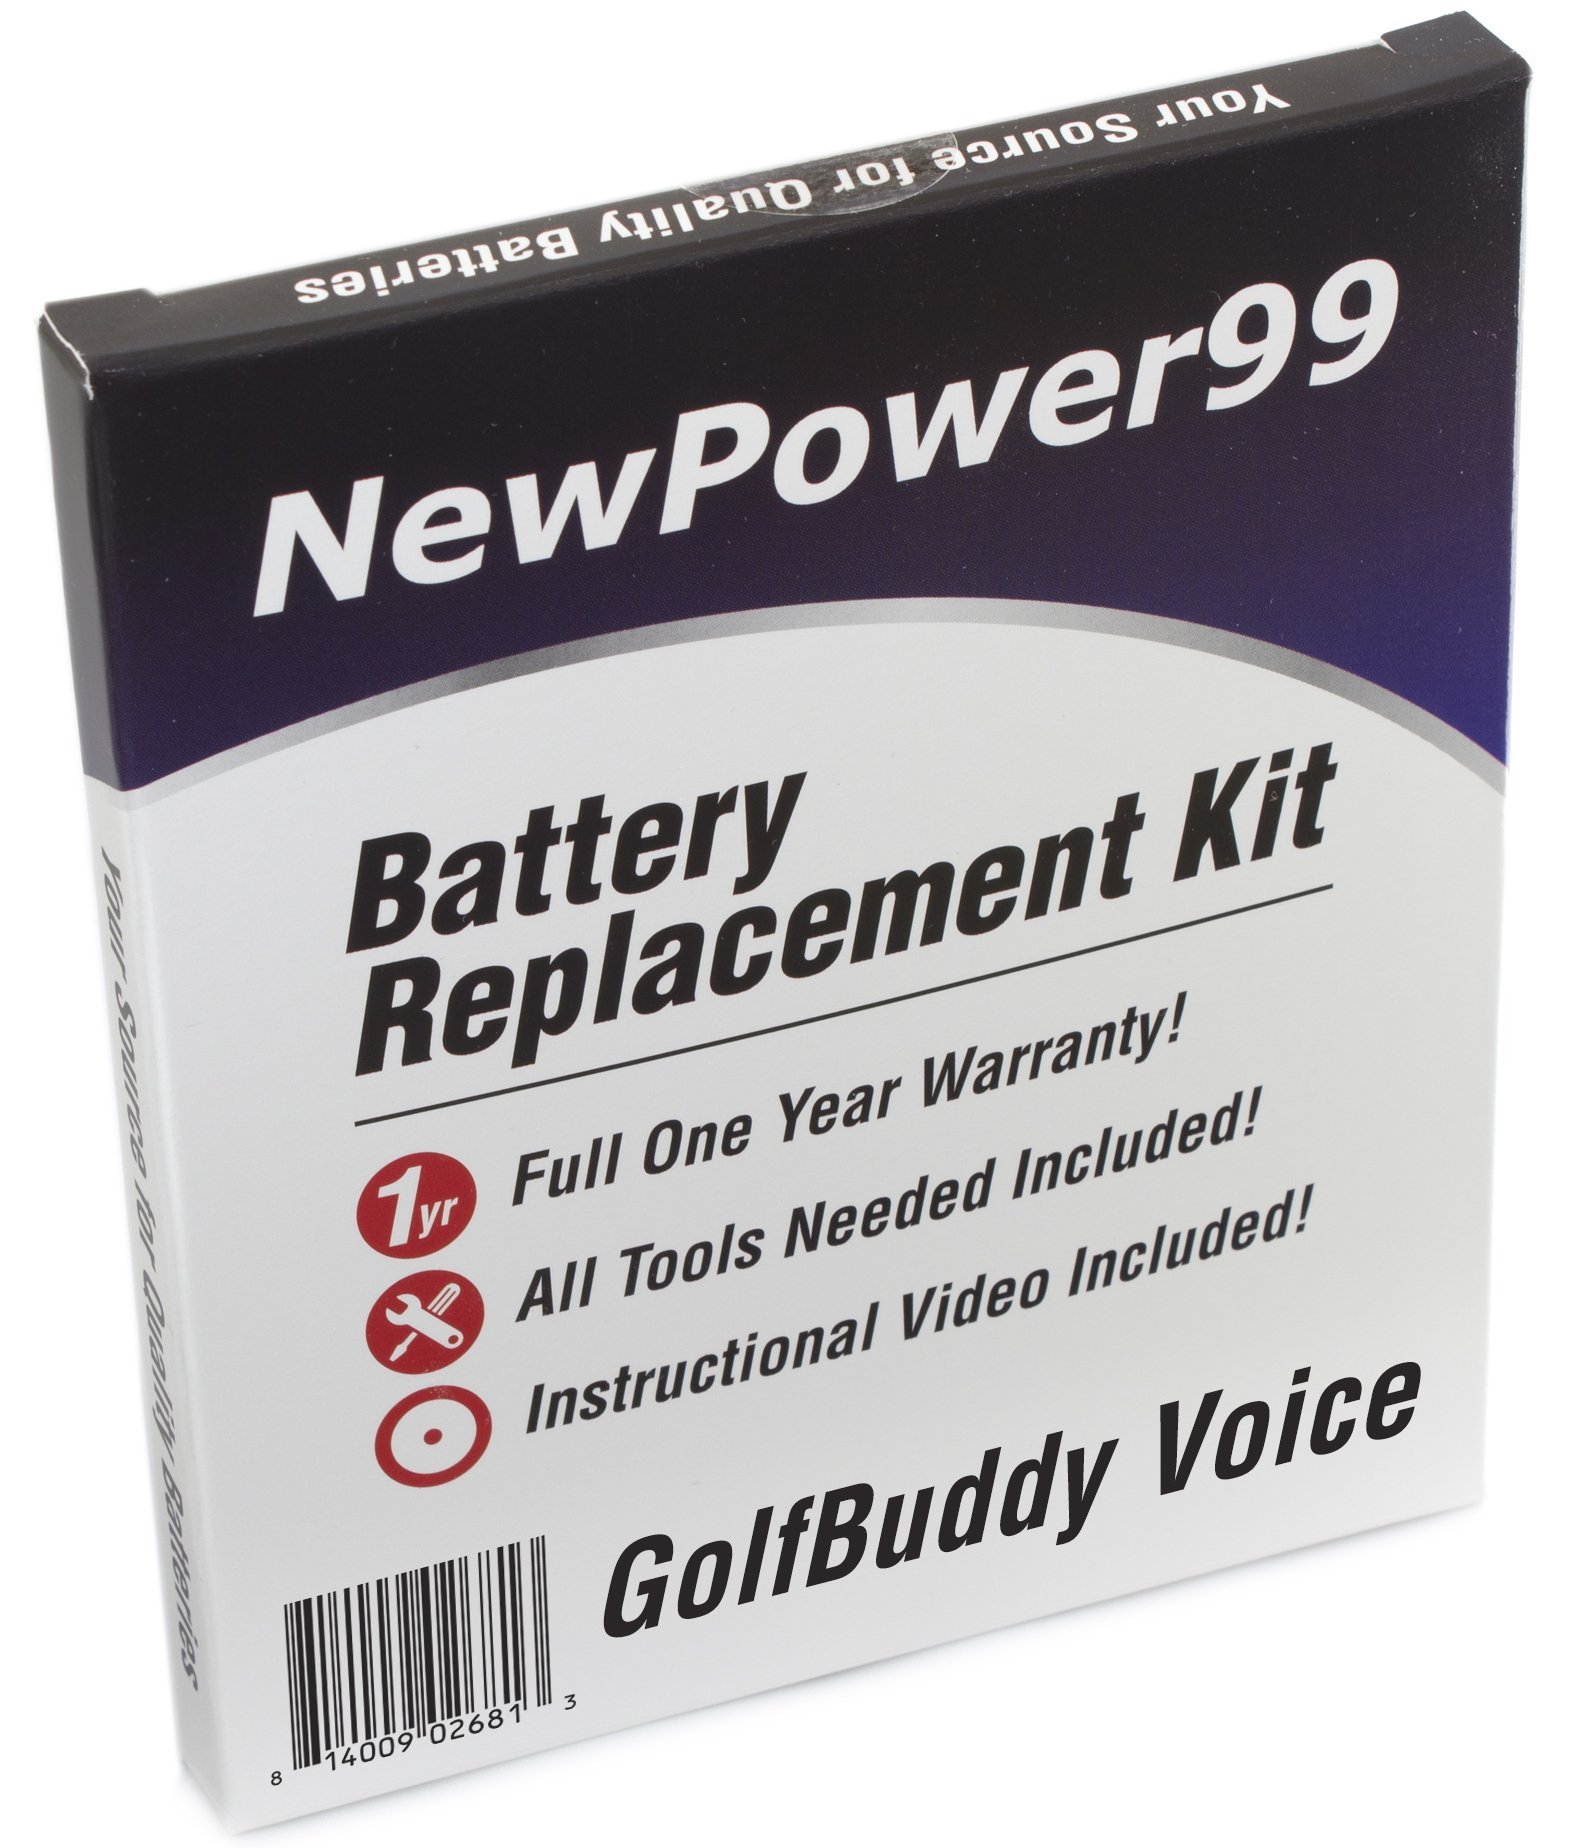 NewPower99 Battery Replacement Kit for GolfBuddy Voice with Installation Video, Tools, and Extended Life Battery. by NewPower99